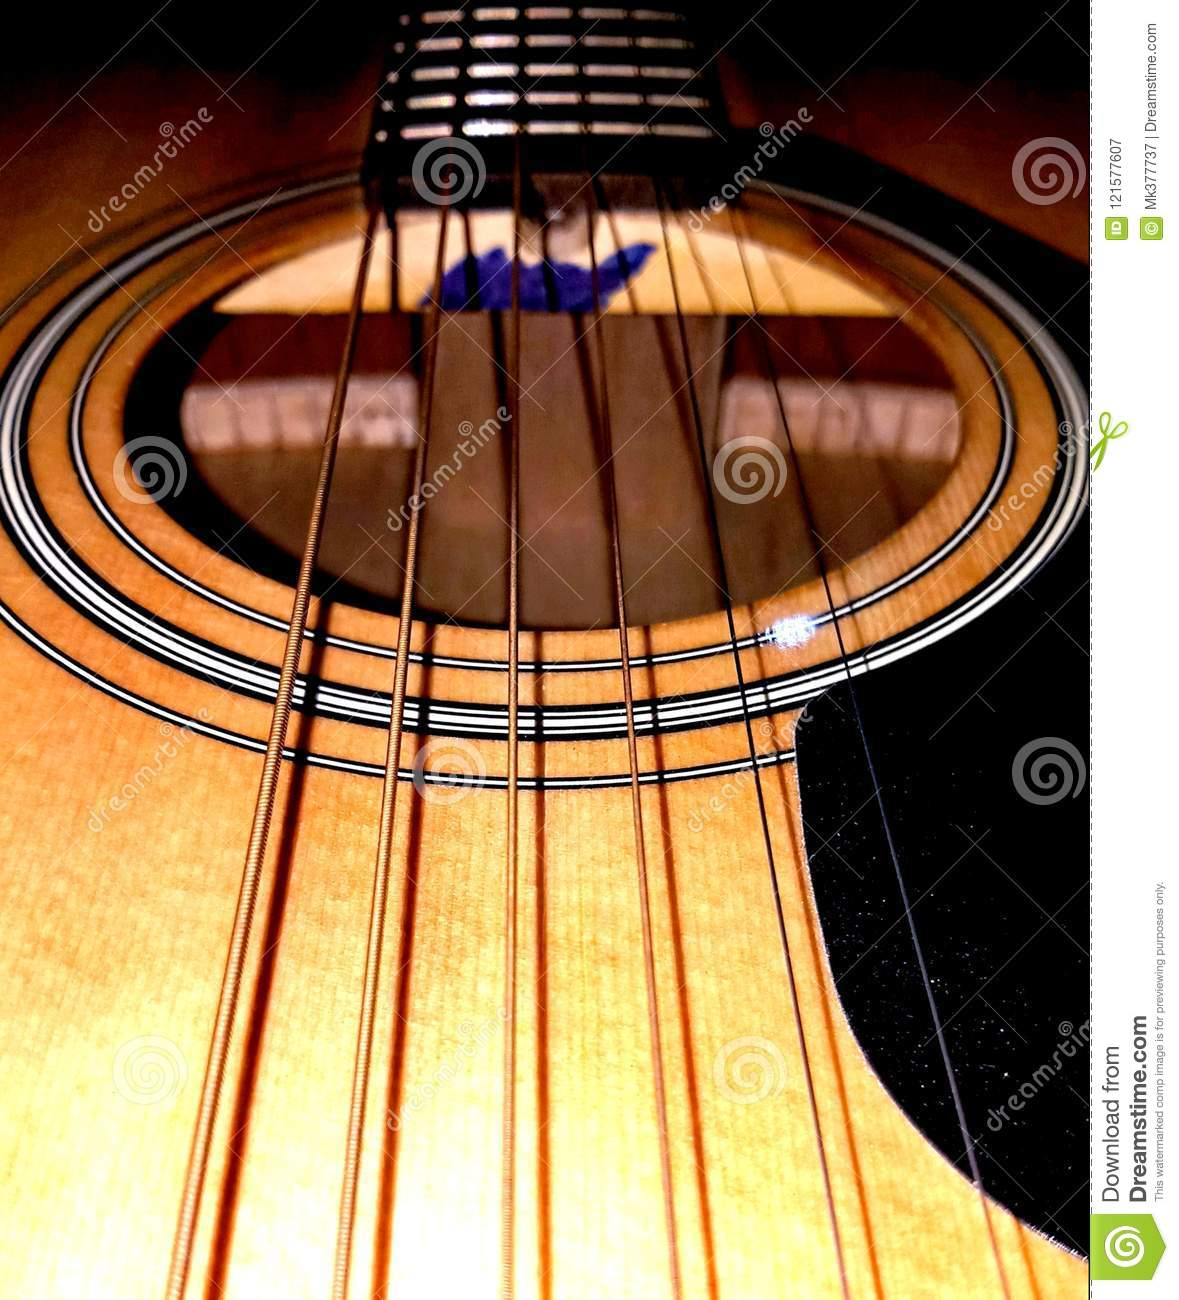 Acoustic Guitar Wallpaper Full Hd Image Stock Image Image Of